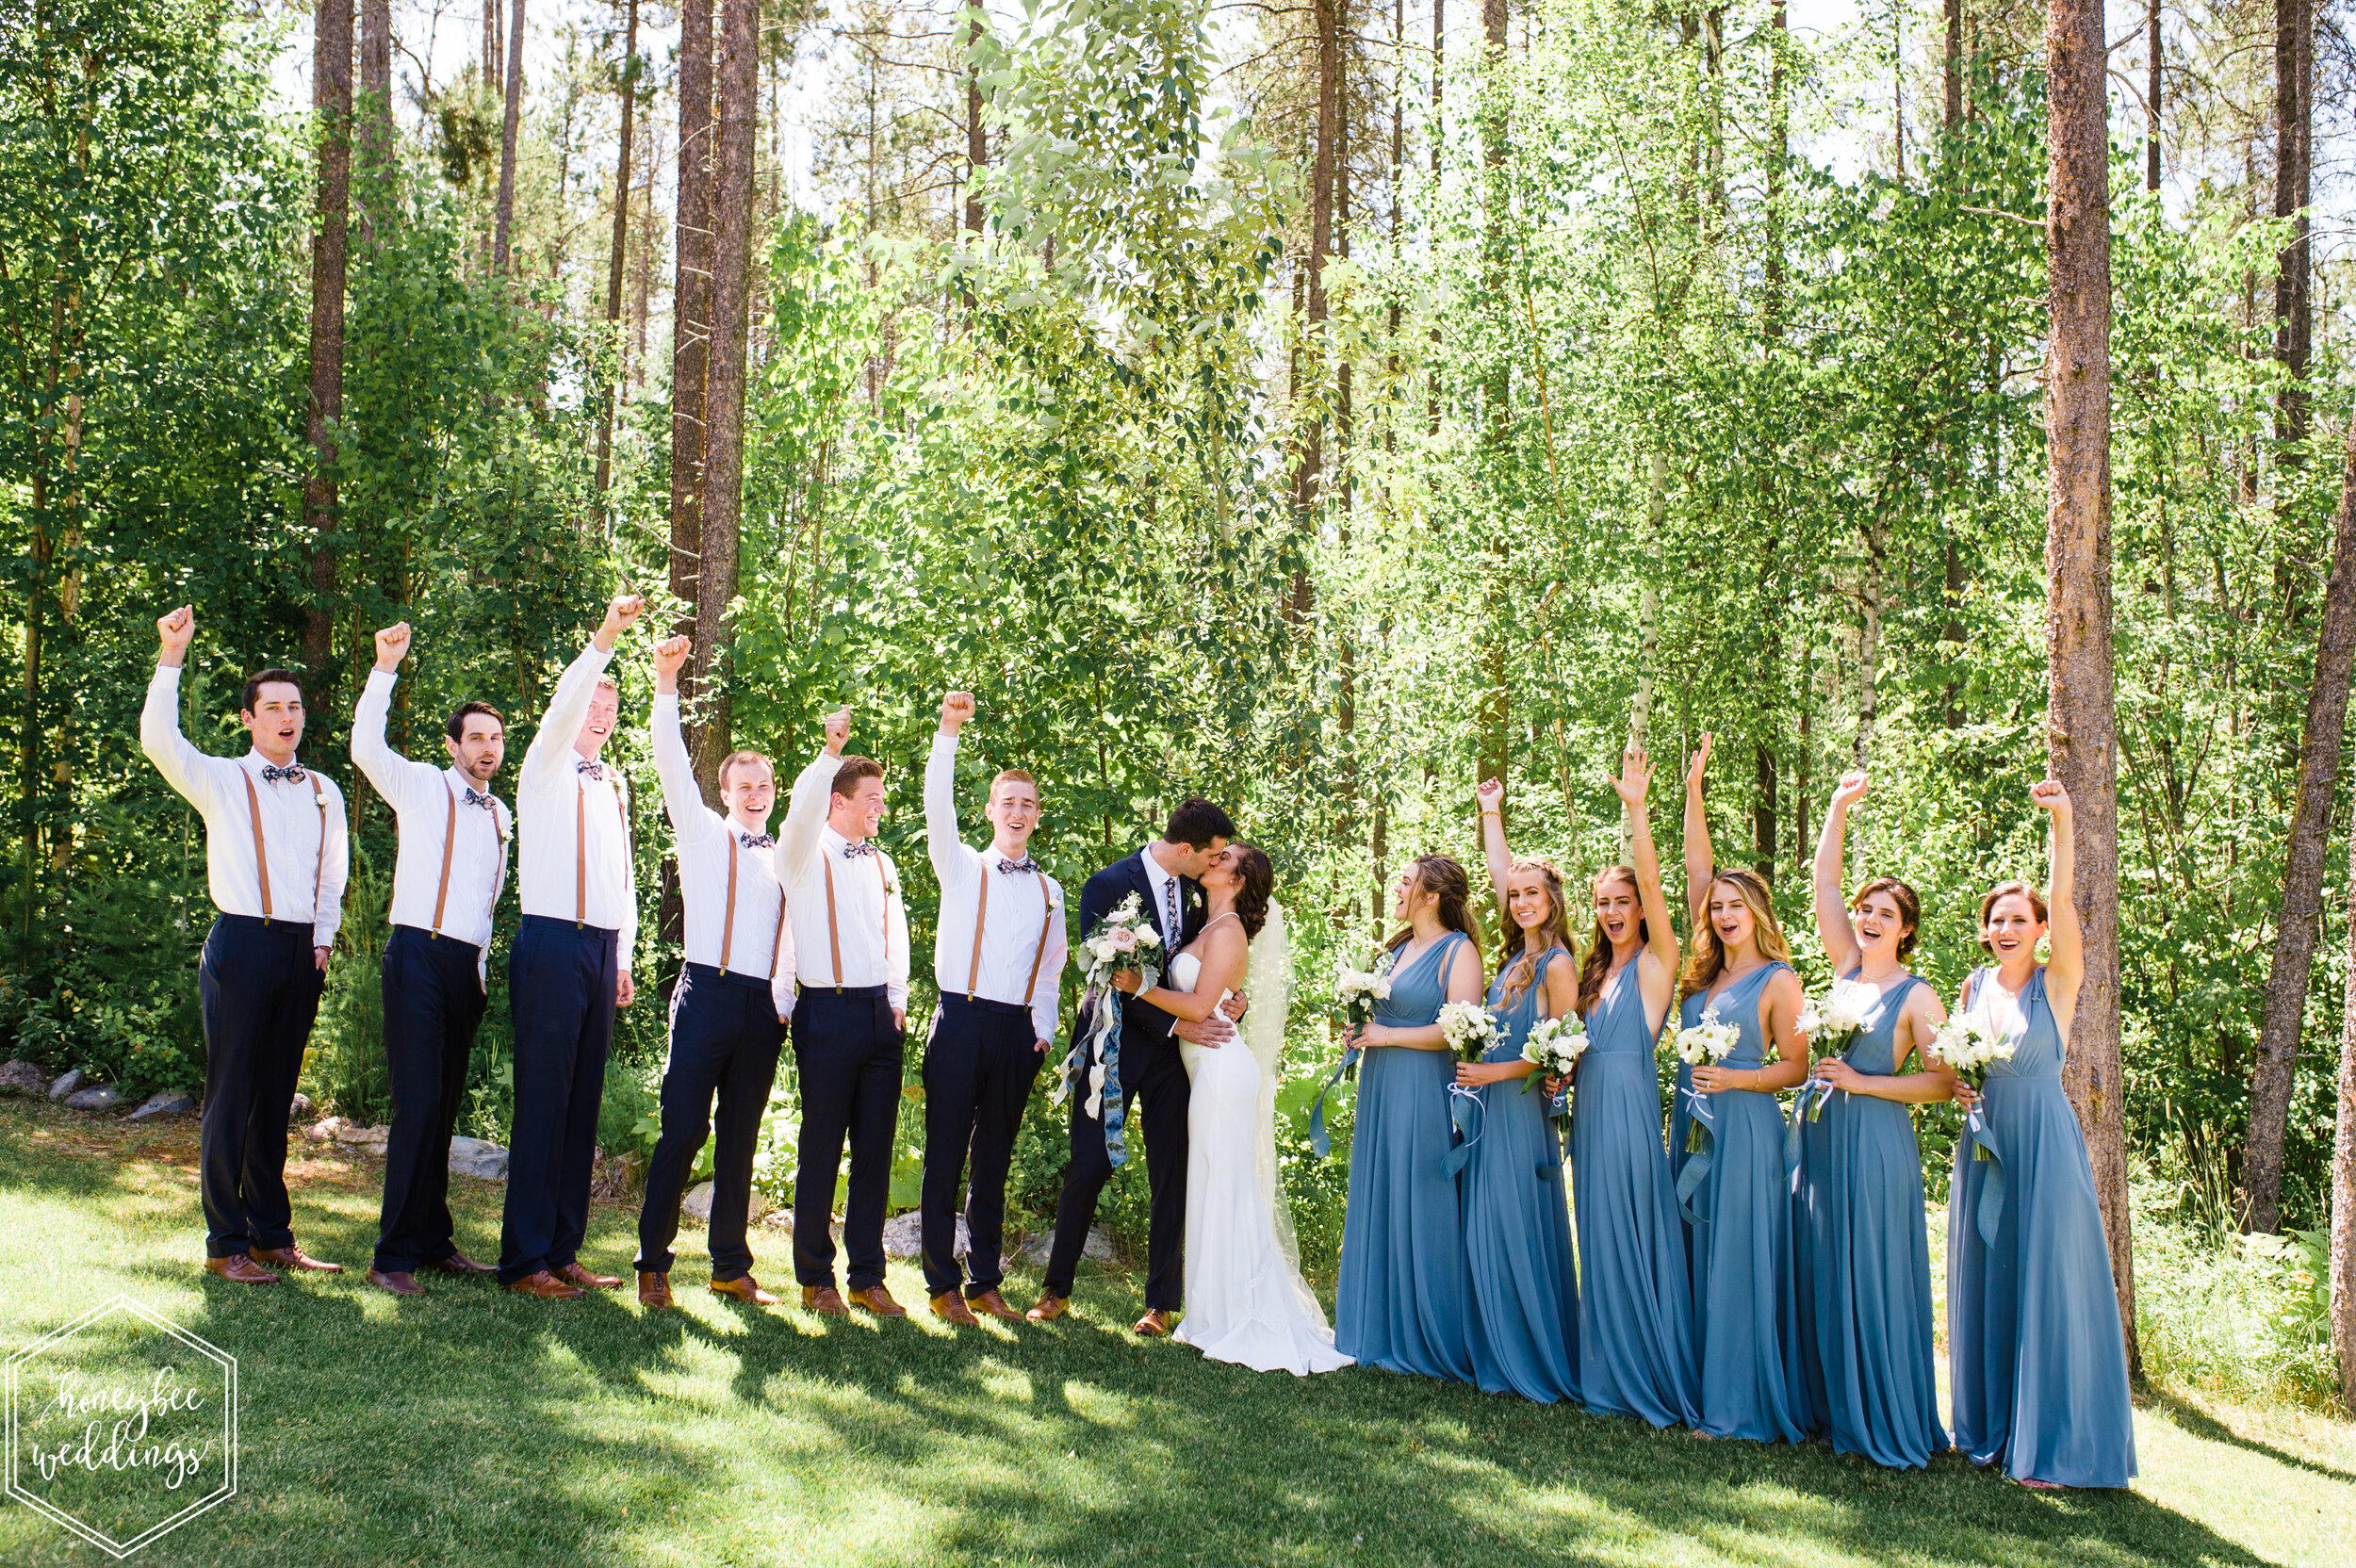 043Glacier National Park Wedding_Glacier Outdoor Center_Honeybee Weddings_Anna & Seth_July 21, 2019-1934.jpg